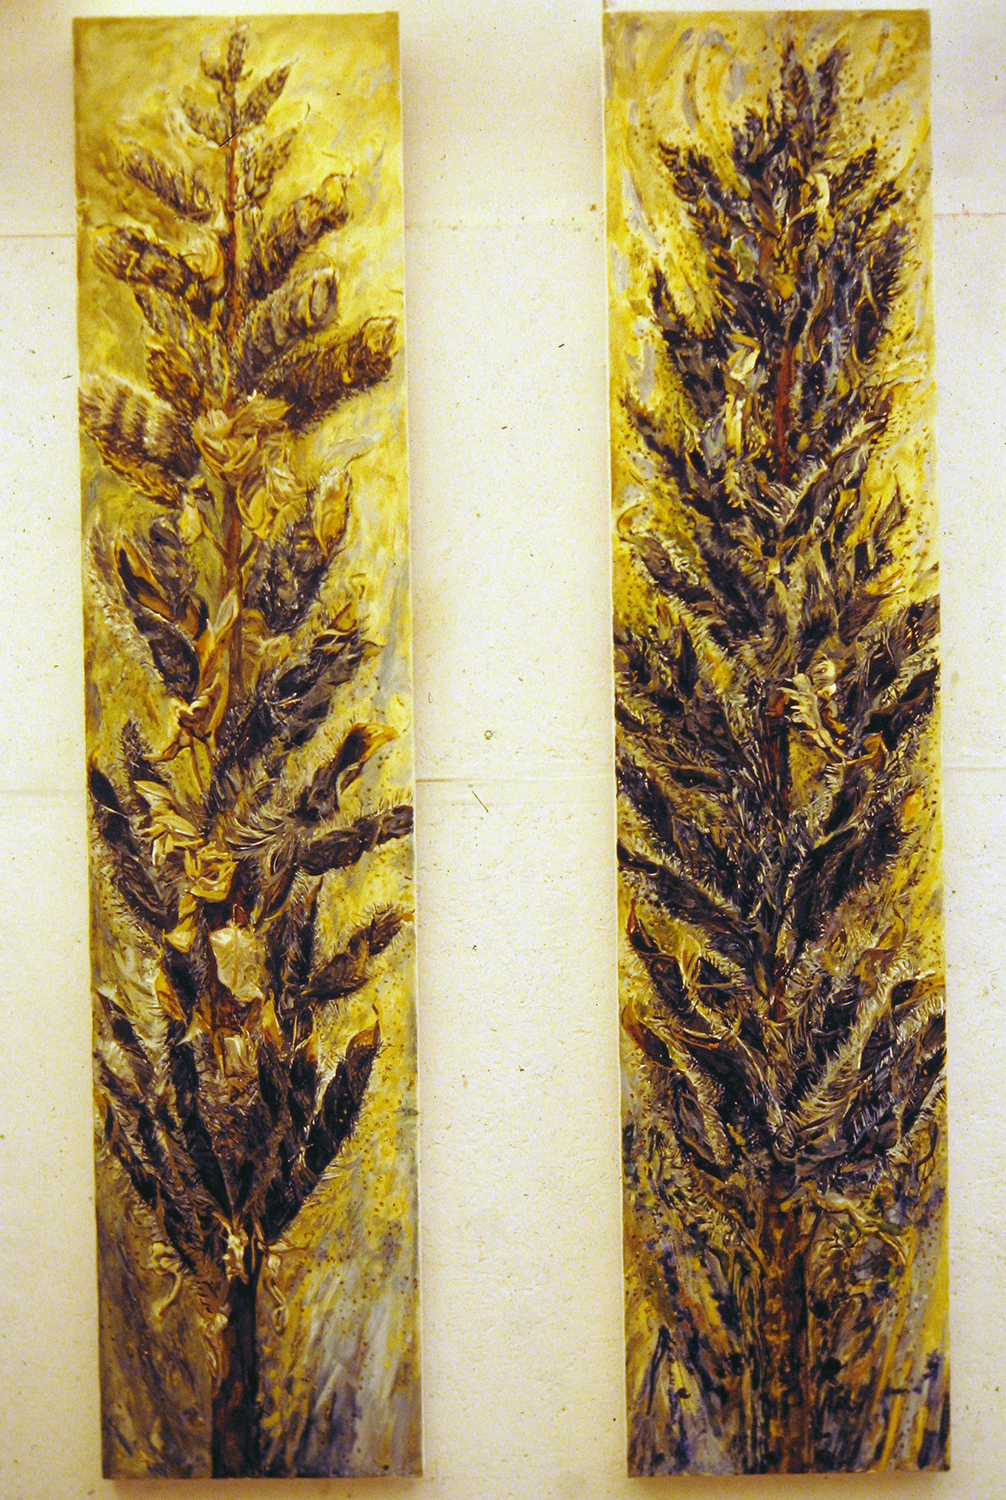 lupin seeding 1 and 2 1989 oil 72x16